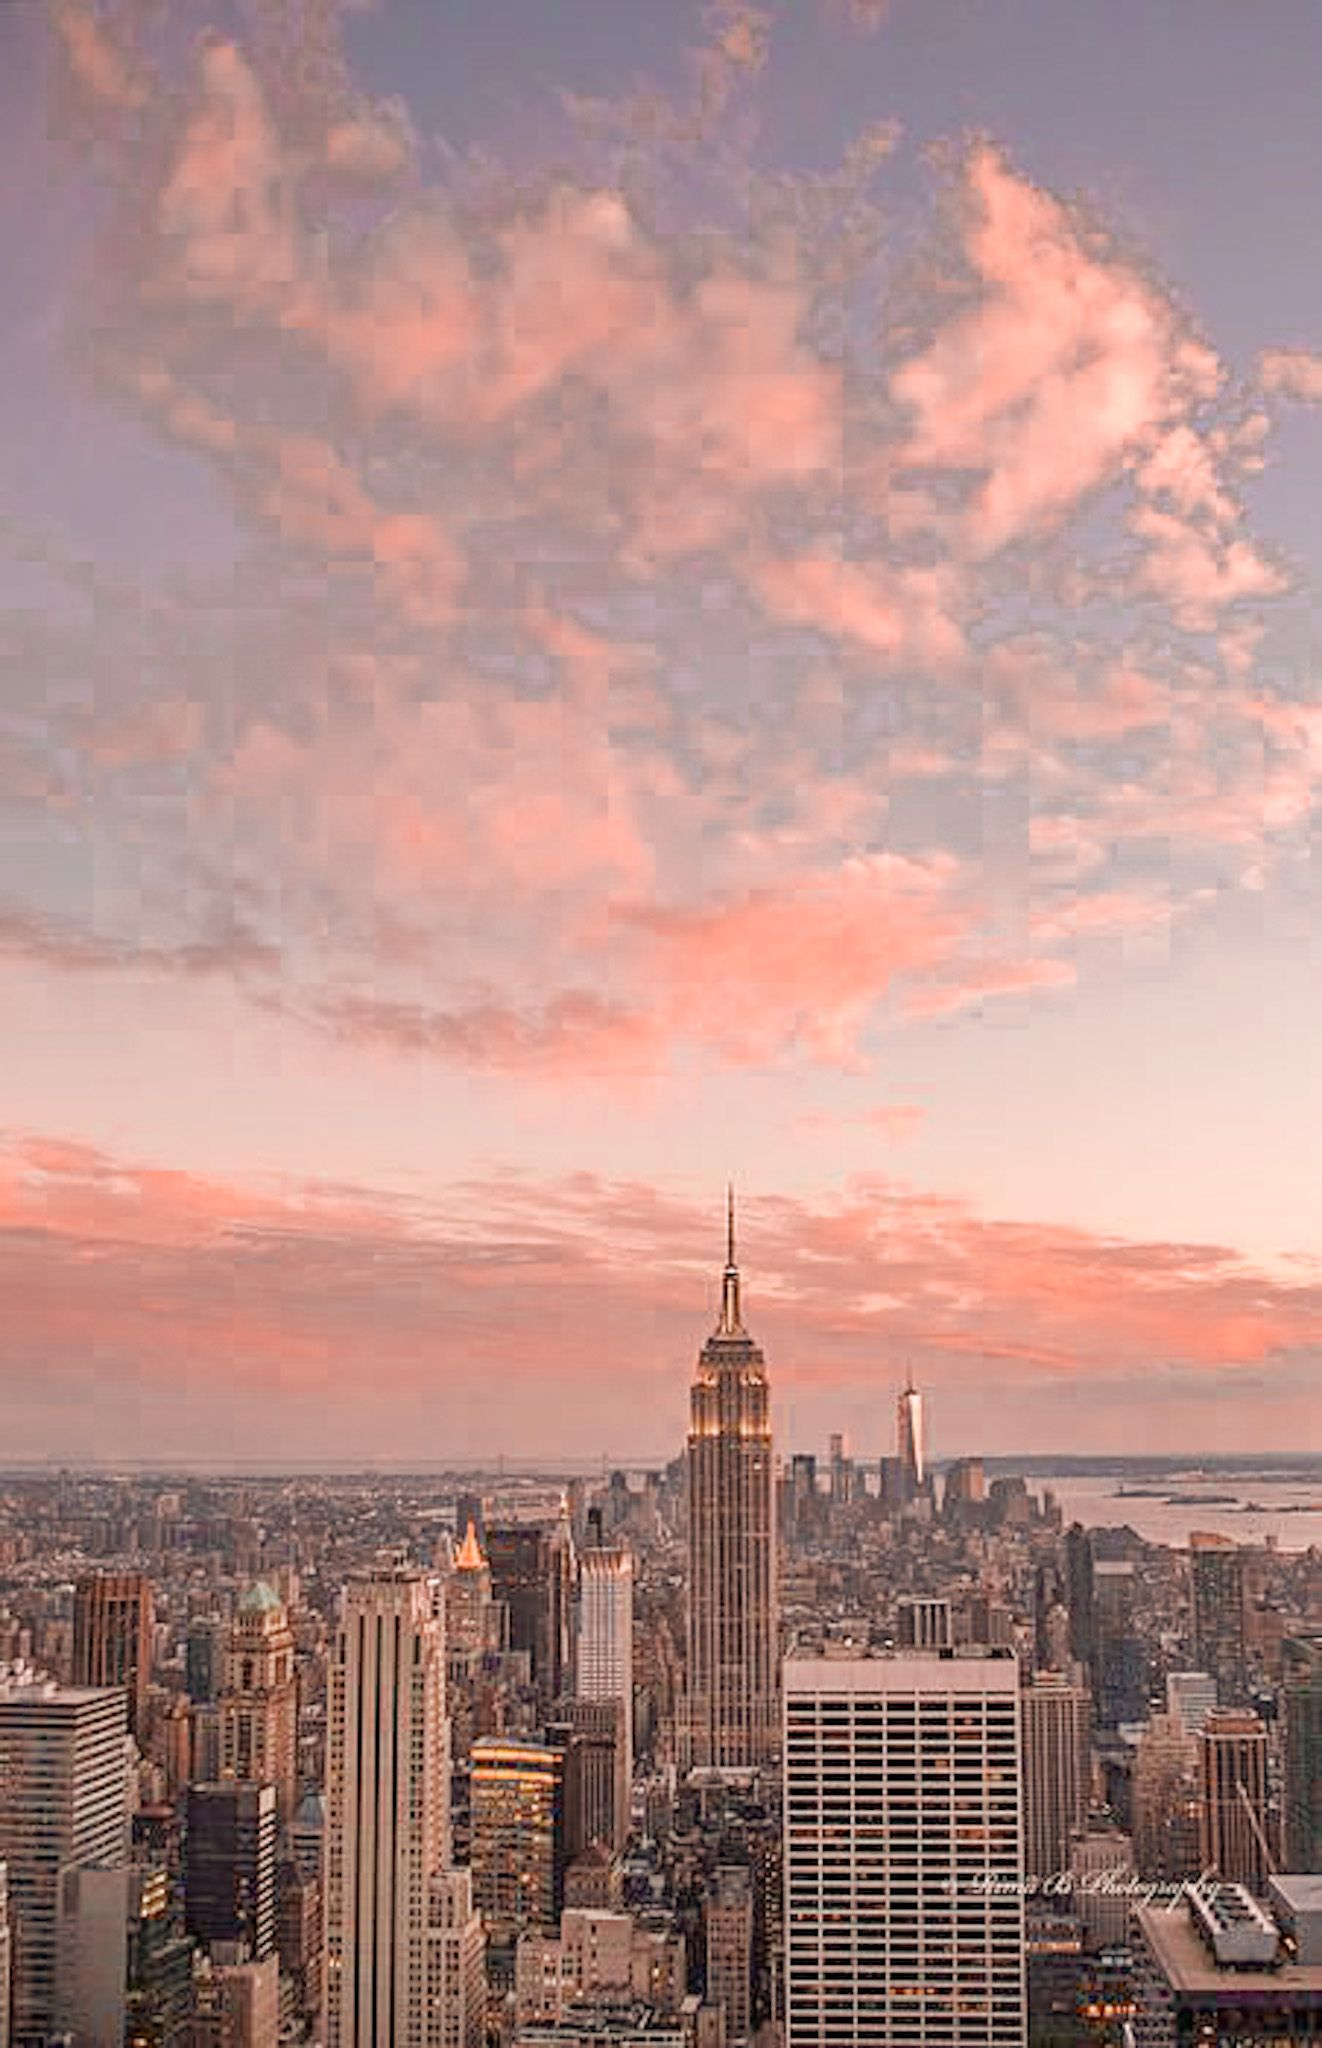 Pin By Alice Rodrigues On Old Aesthetic New York Wallpaper City Aesthetic City Wallpaper